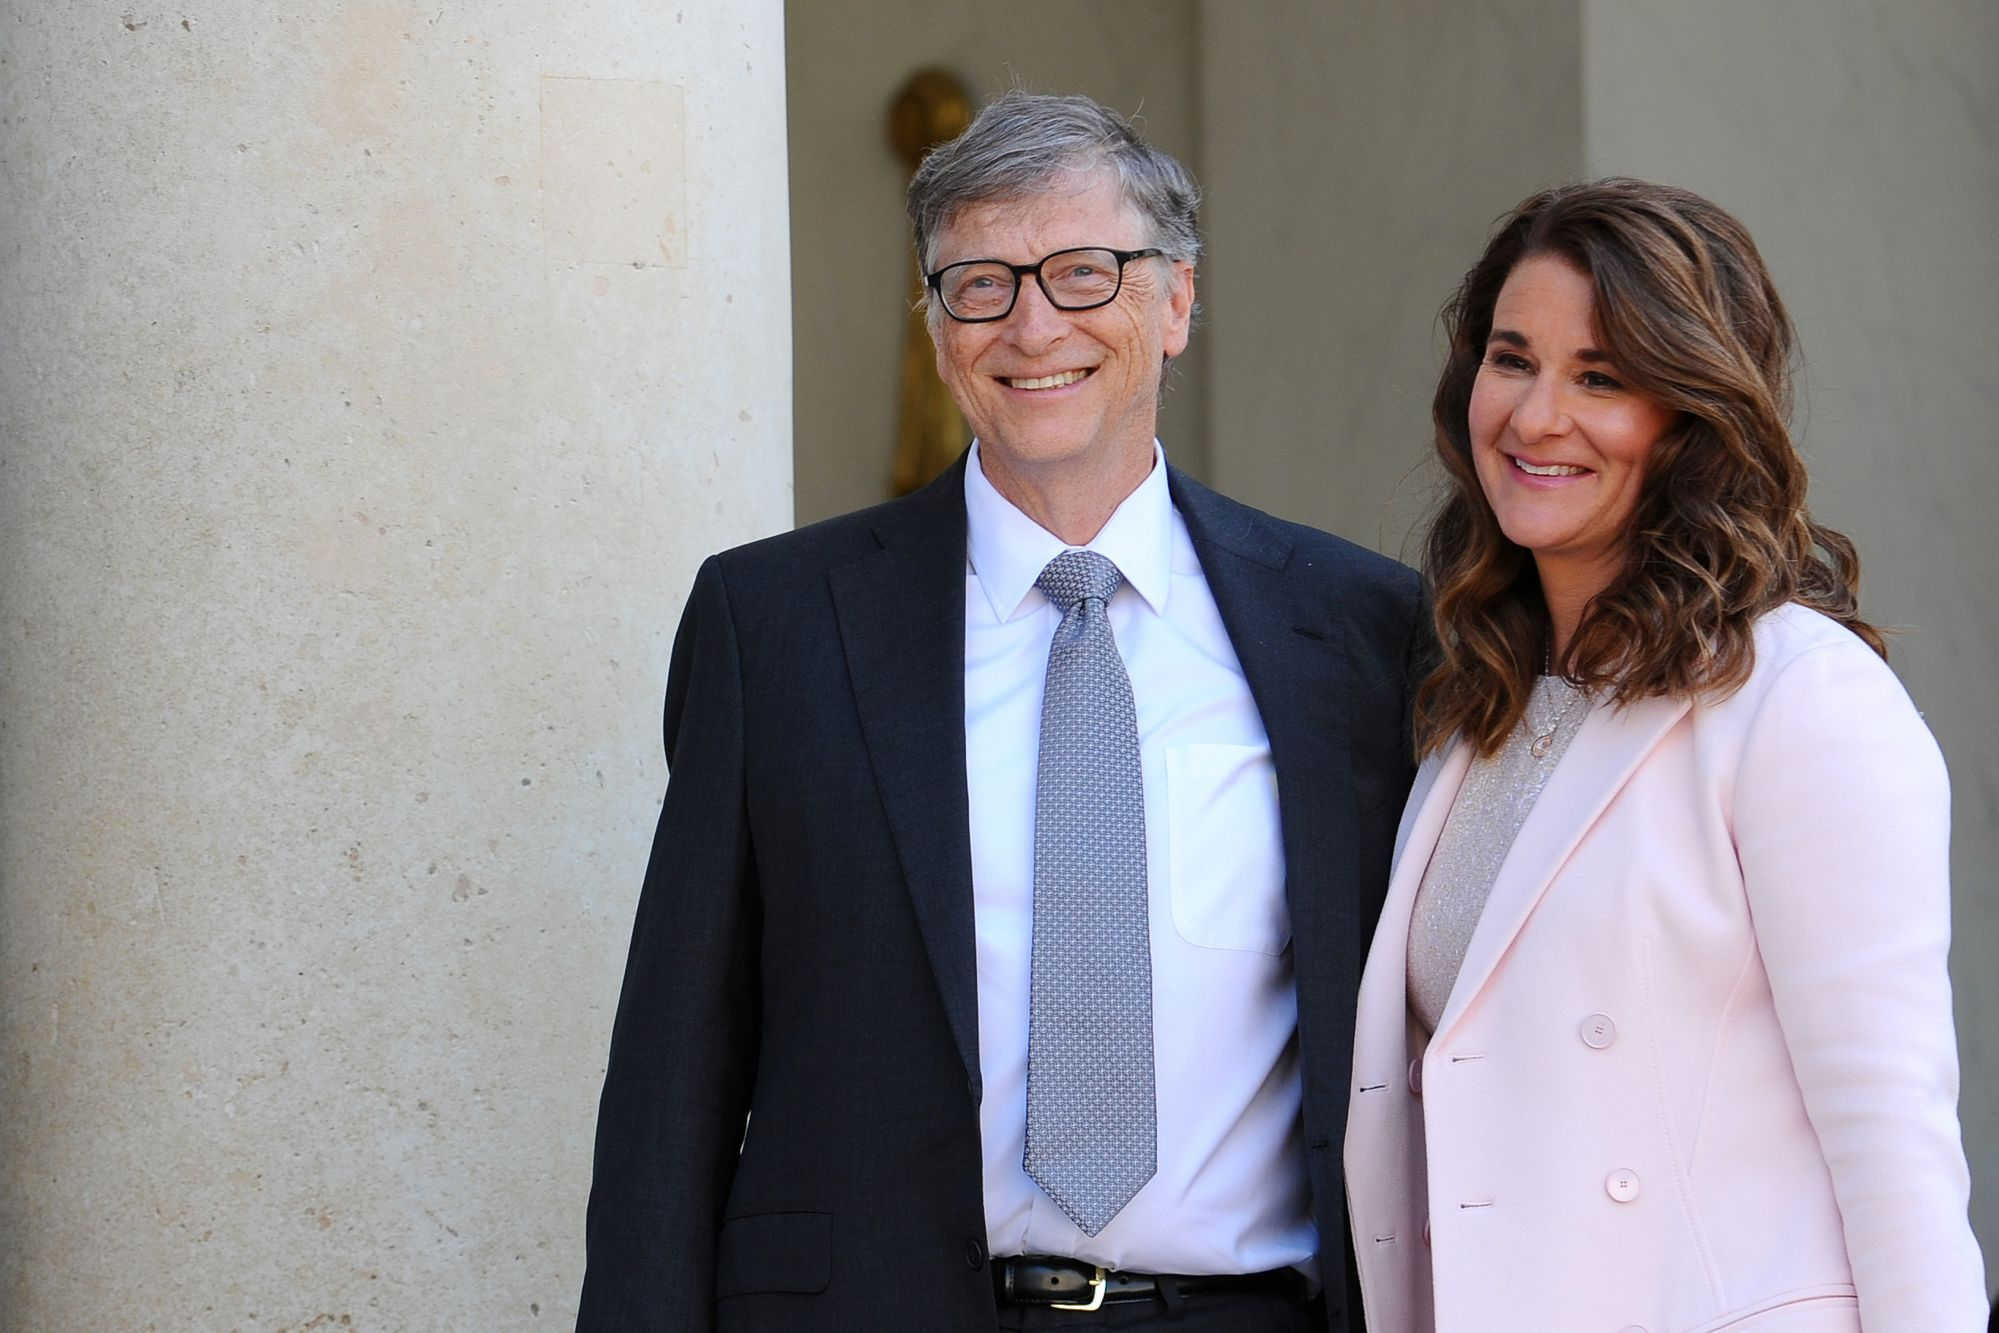 PARIS, FRANCE - APRIL 21: Bill and Melinda Gates pose in front of the Elysee Palace before receiving the award of Commander of the Legion of Honor by French President Francois Hollande on April 21, 2017 in Paris, France. French President Franois Hollande awarded the Honorary Commander of the Legion of Honor to Bill and Melinda Gates as the highest national award under the partnership between France and the Bill & Melinda Gates Foundation, which have been unavoidable actors for several years Of development